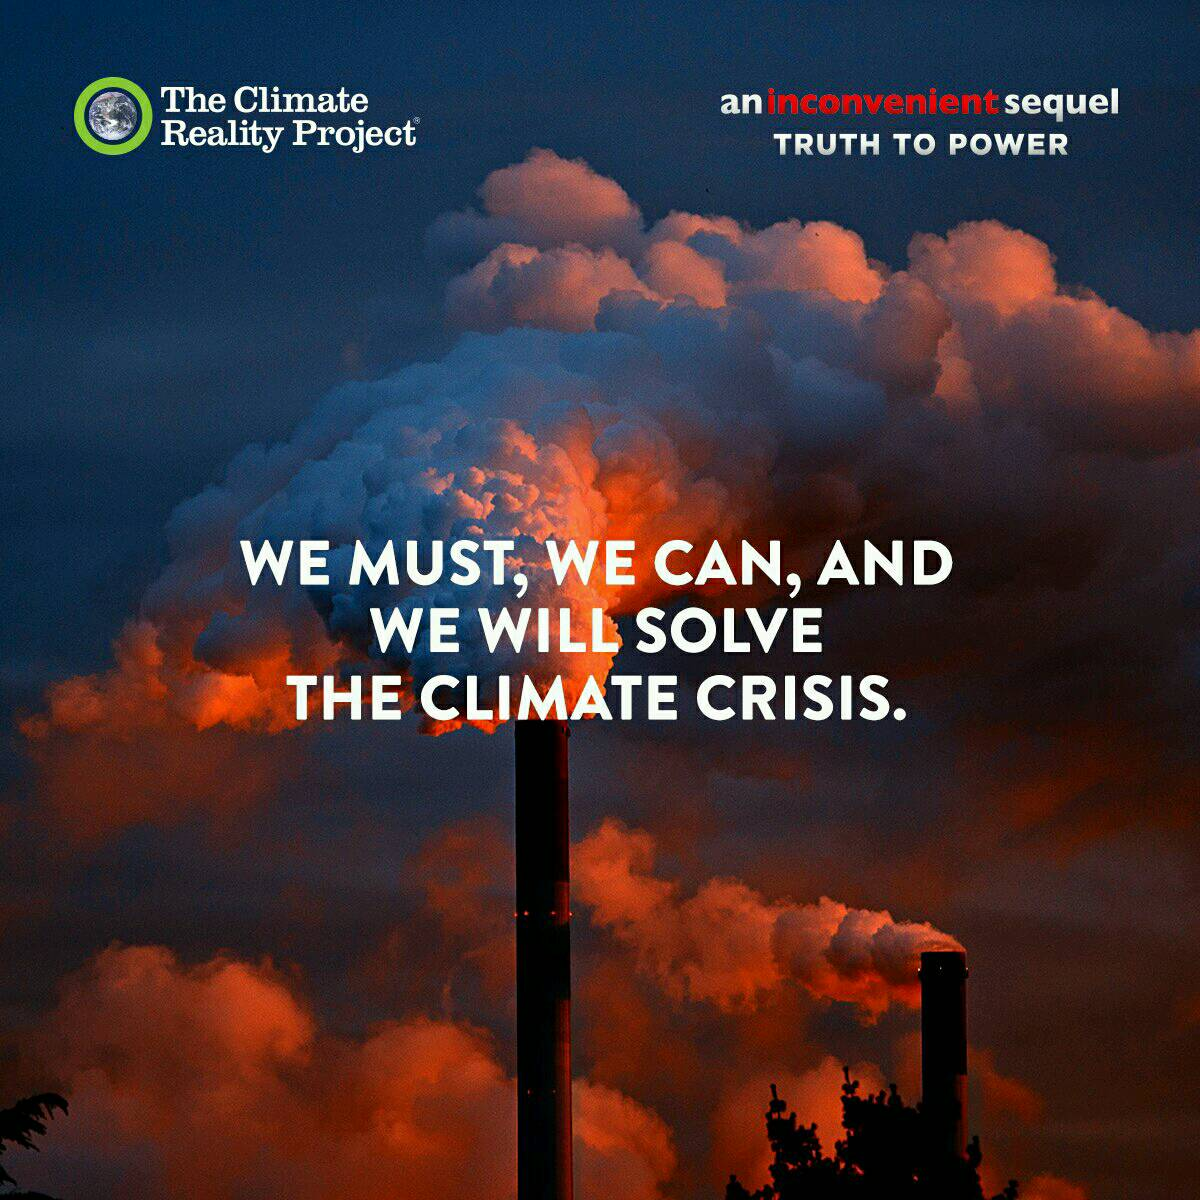 Over 97% of #scientists agree that #climatechange is real, human-caused, &amp; happening right now. RT if you side with science #BeInconvenient<br>http://pic.twitter.com/aMWO16Llwe